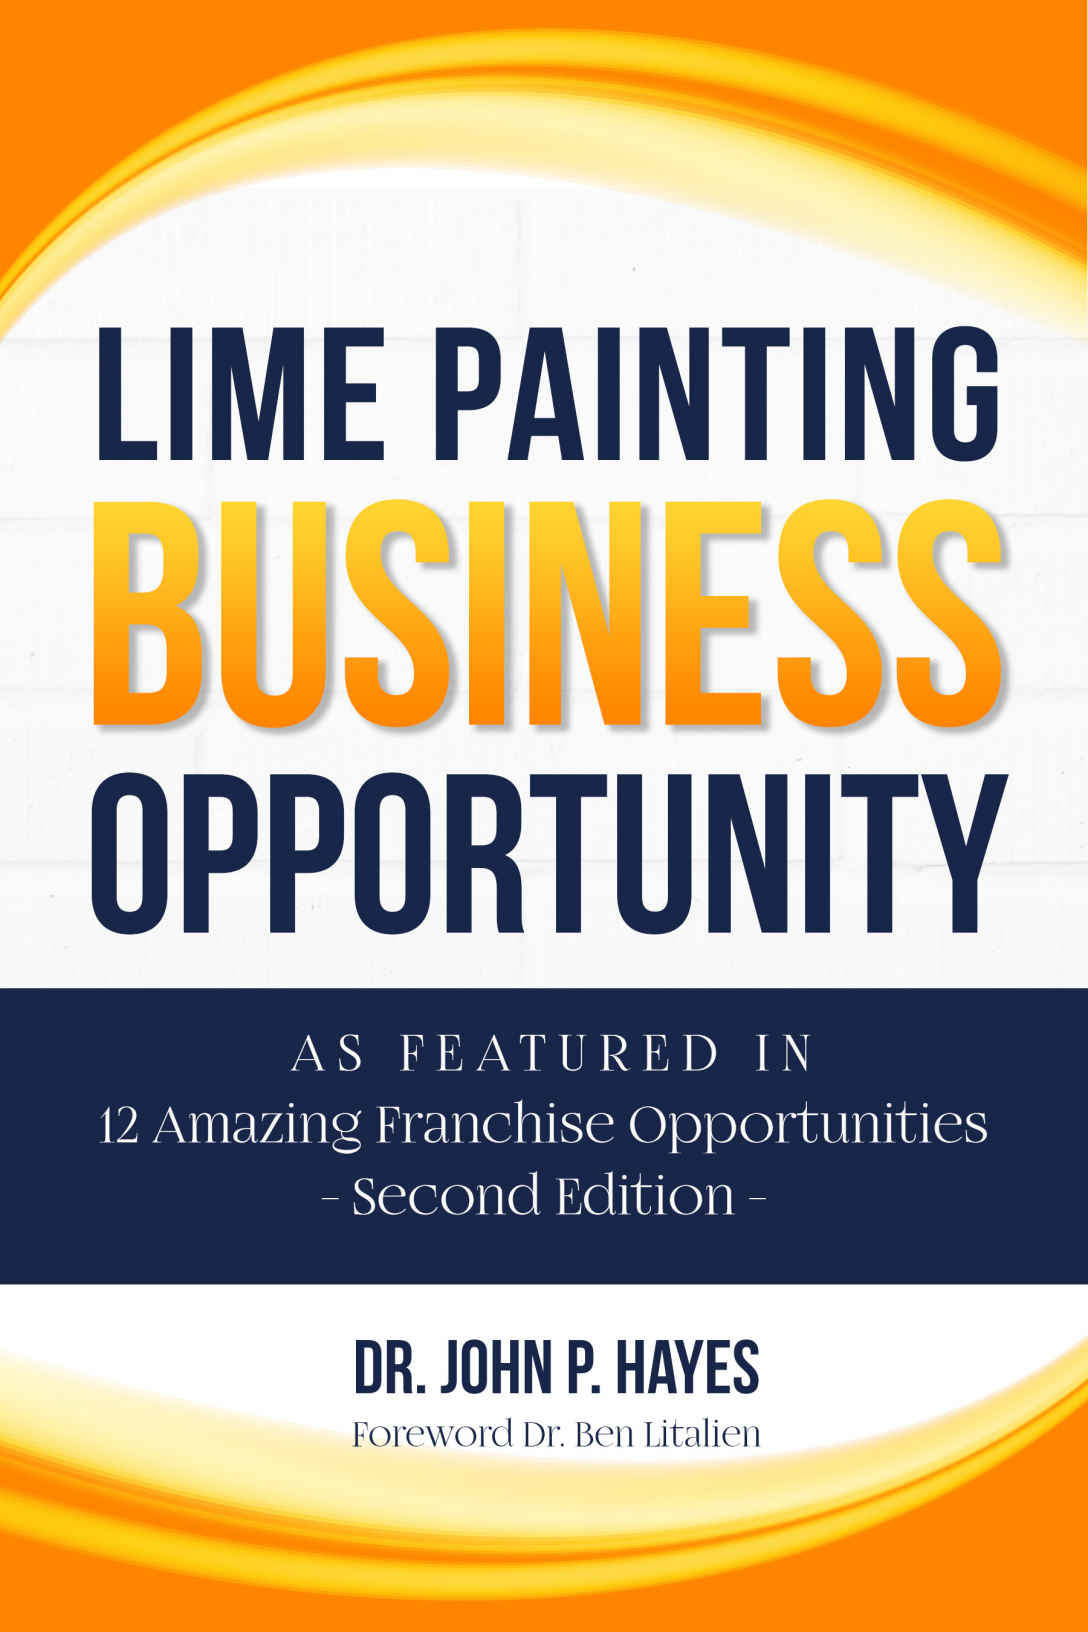 Local Denver-Based Paint Company Featured as an Amazing Franchise Opportunity